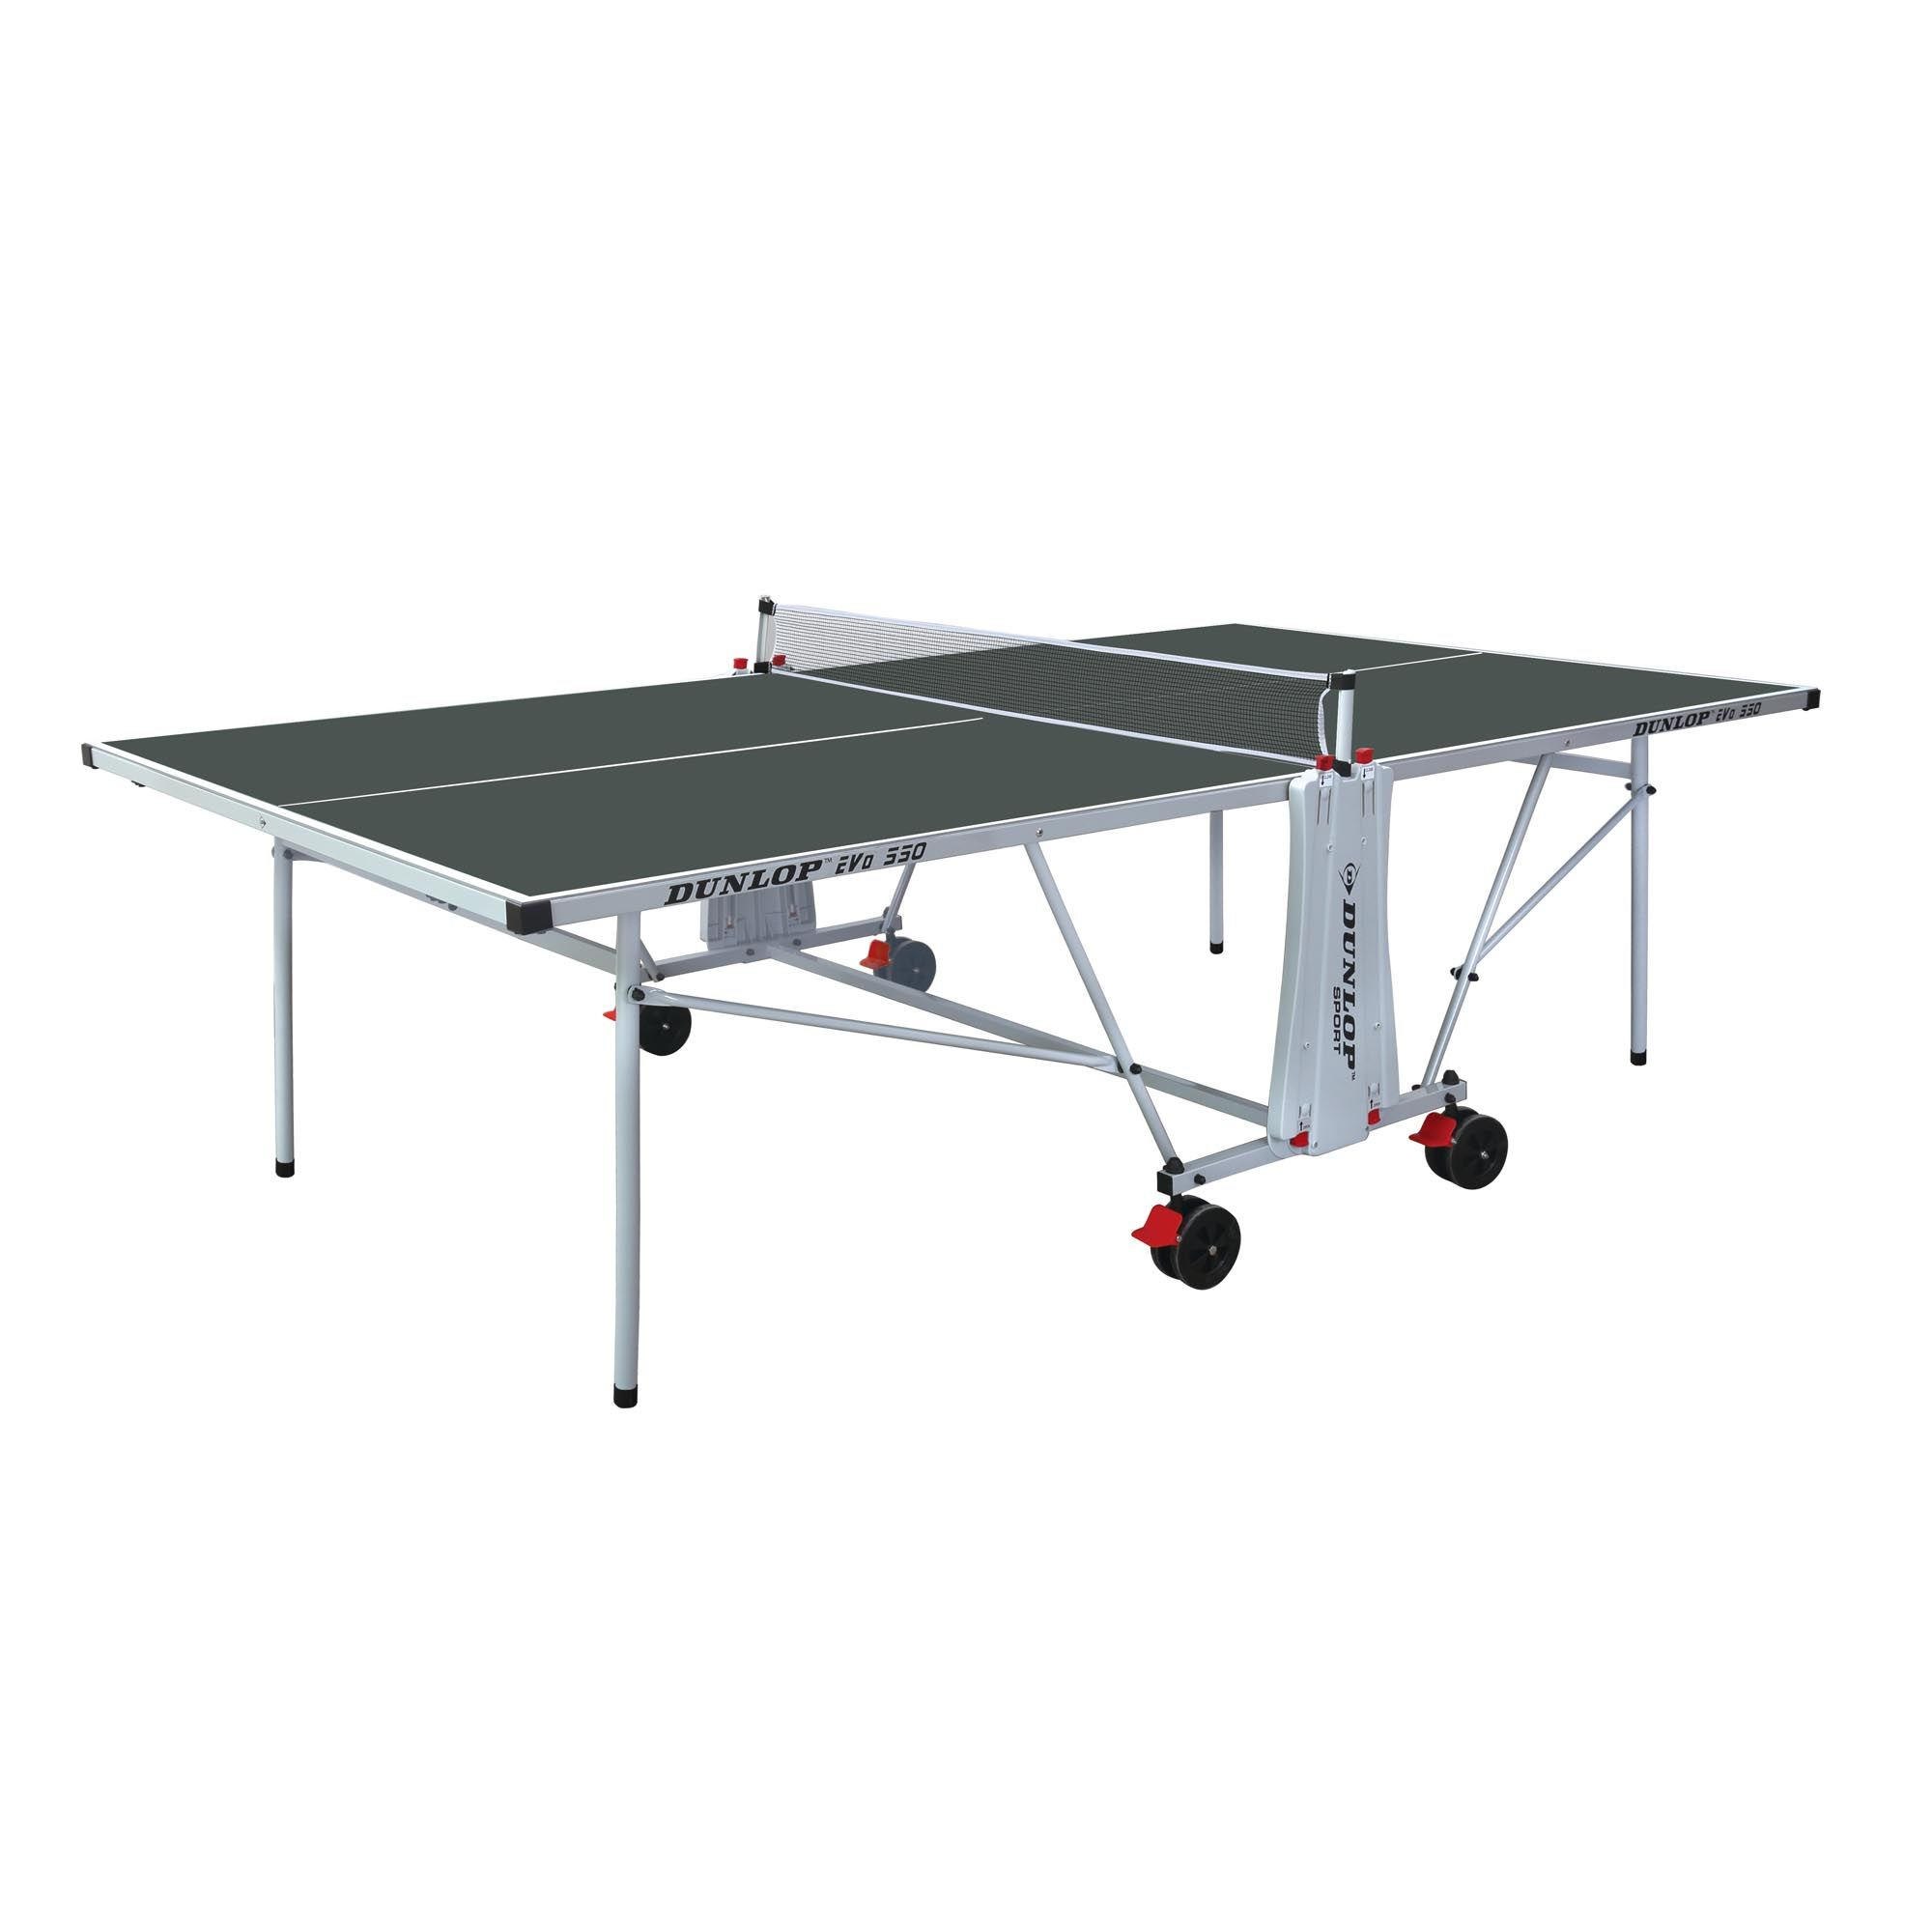 Dunlop evo 550 outdoor table tennis table - Weatherproof table tennis table ...